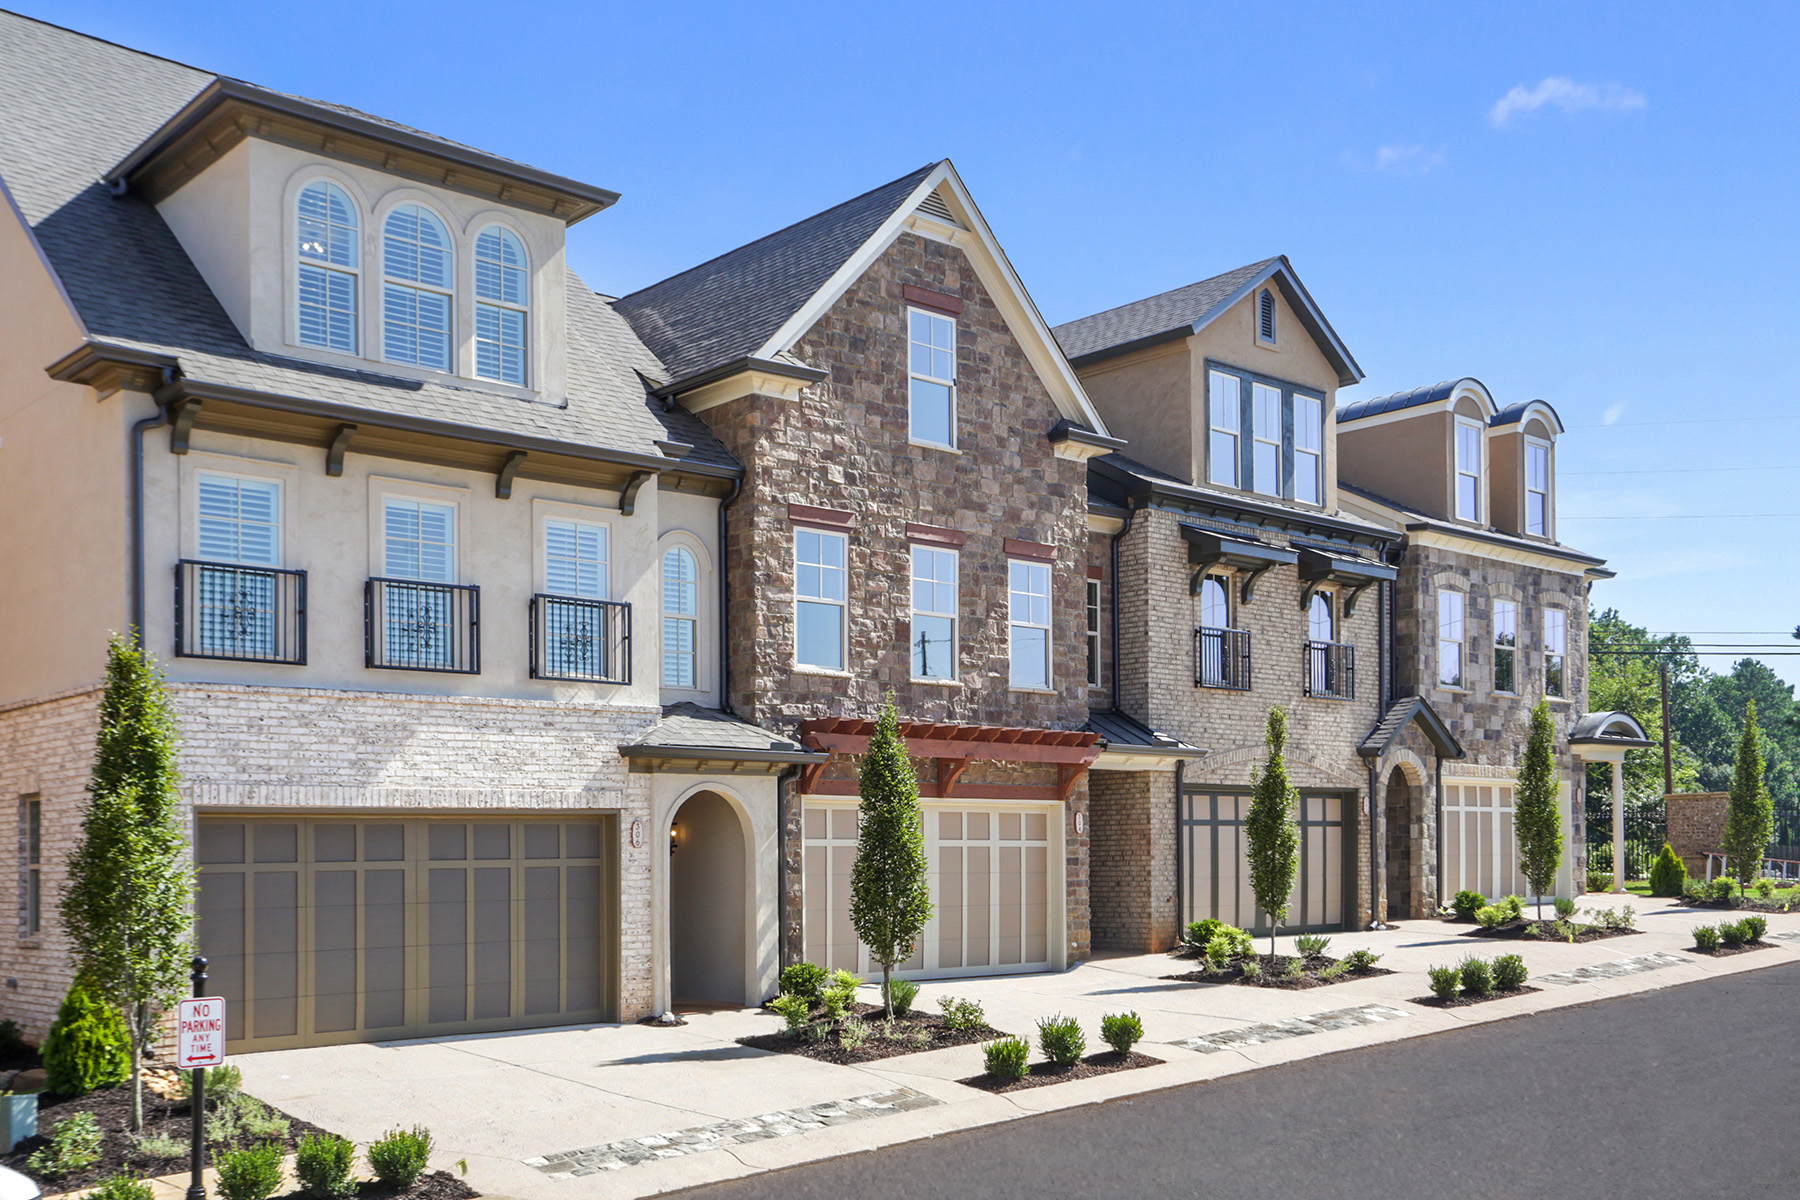 townhouses のために 売買 アット Gated Enclave In Woodstock 105 Via Roma, Woodstock, ジョージア 30188 アメリカ